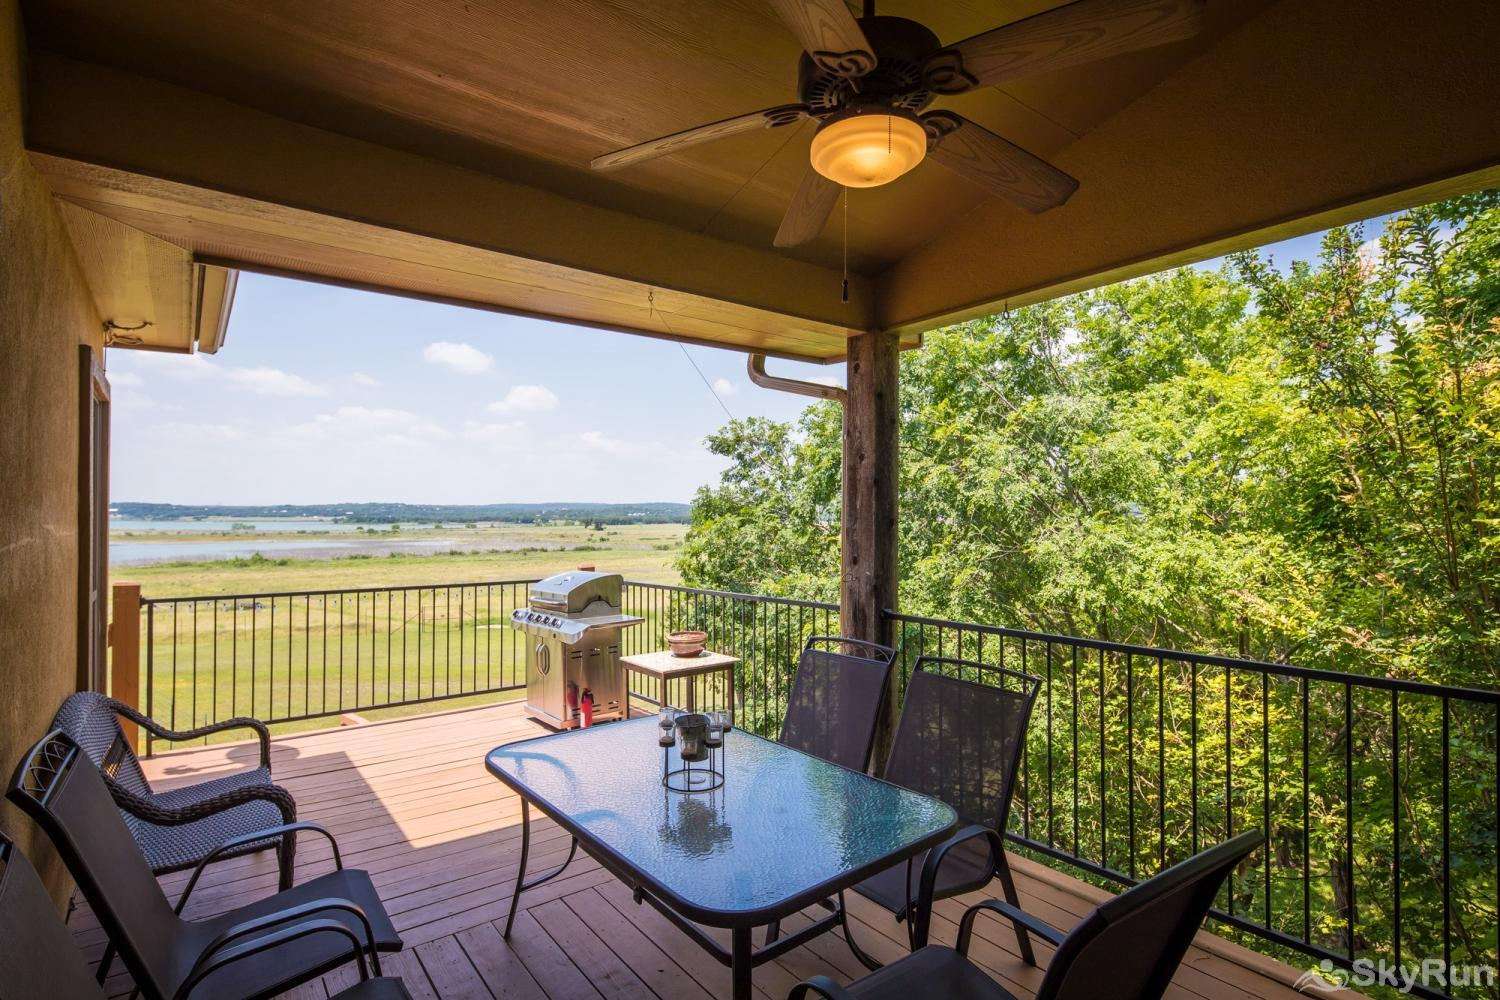 LAKESIDE HAVEN Outdoor Dining on Shaded Upper Deck